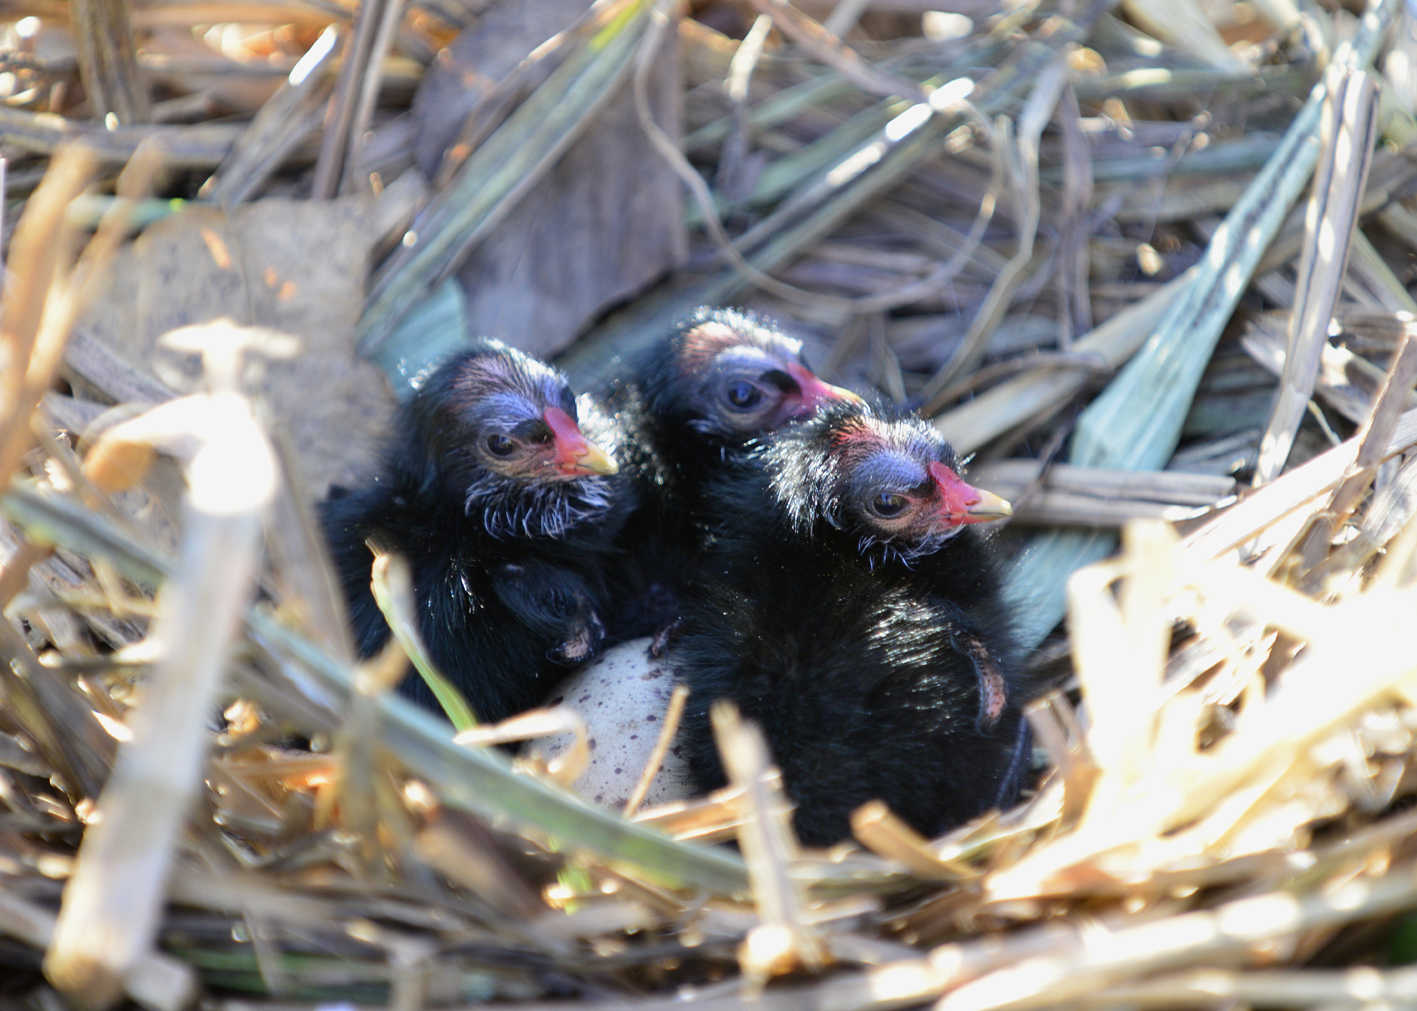 Moorhen chicks a sign of spring